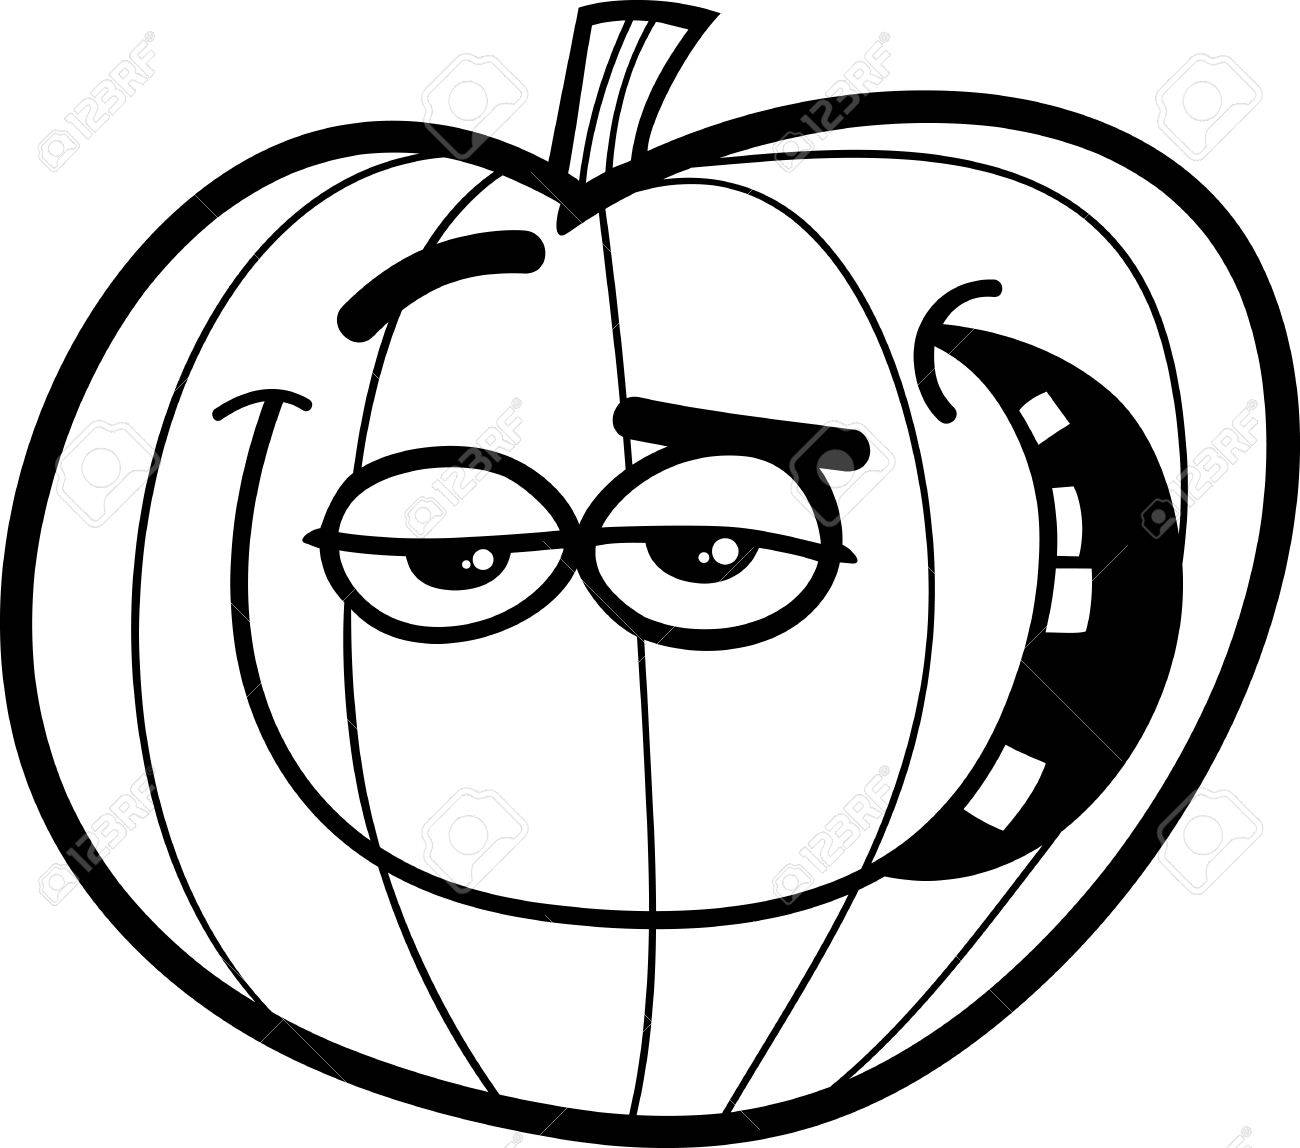 black and white cartoon illustration of halloween pumpkin for